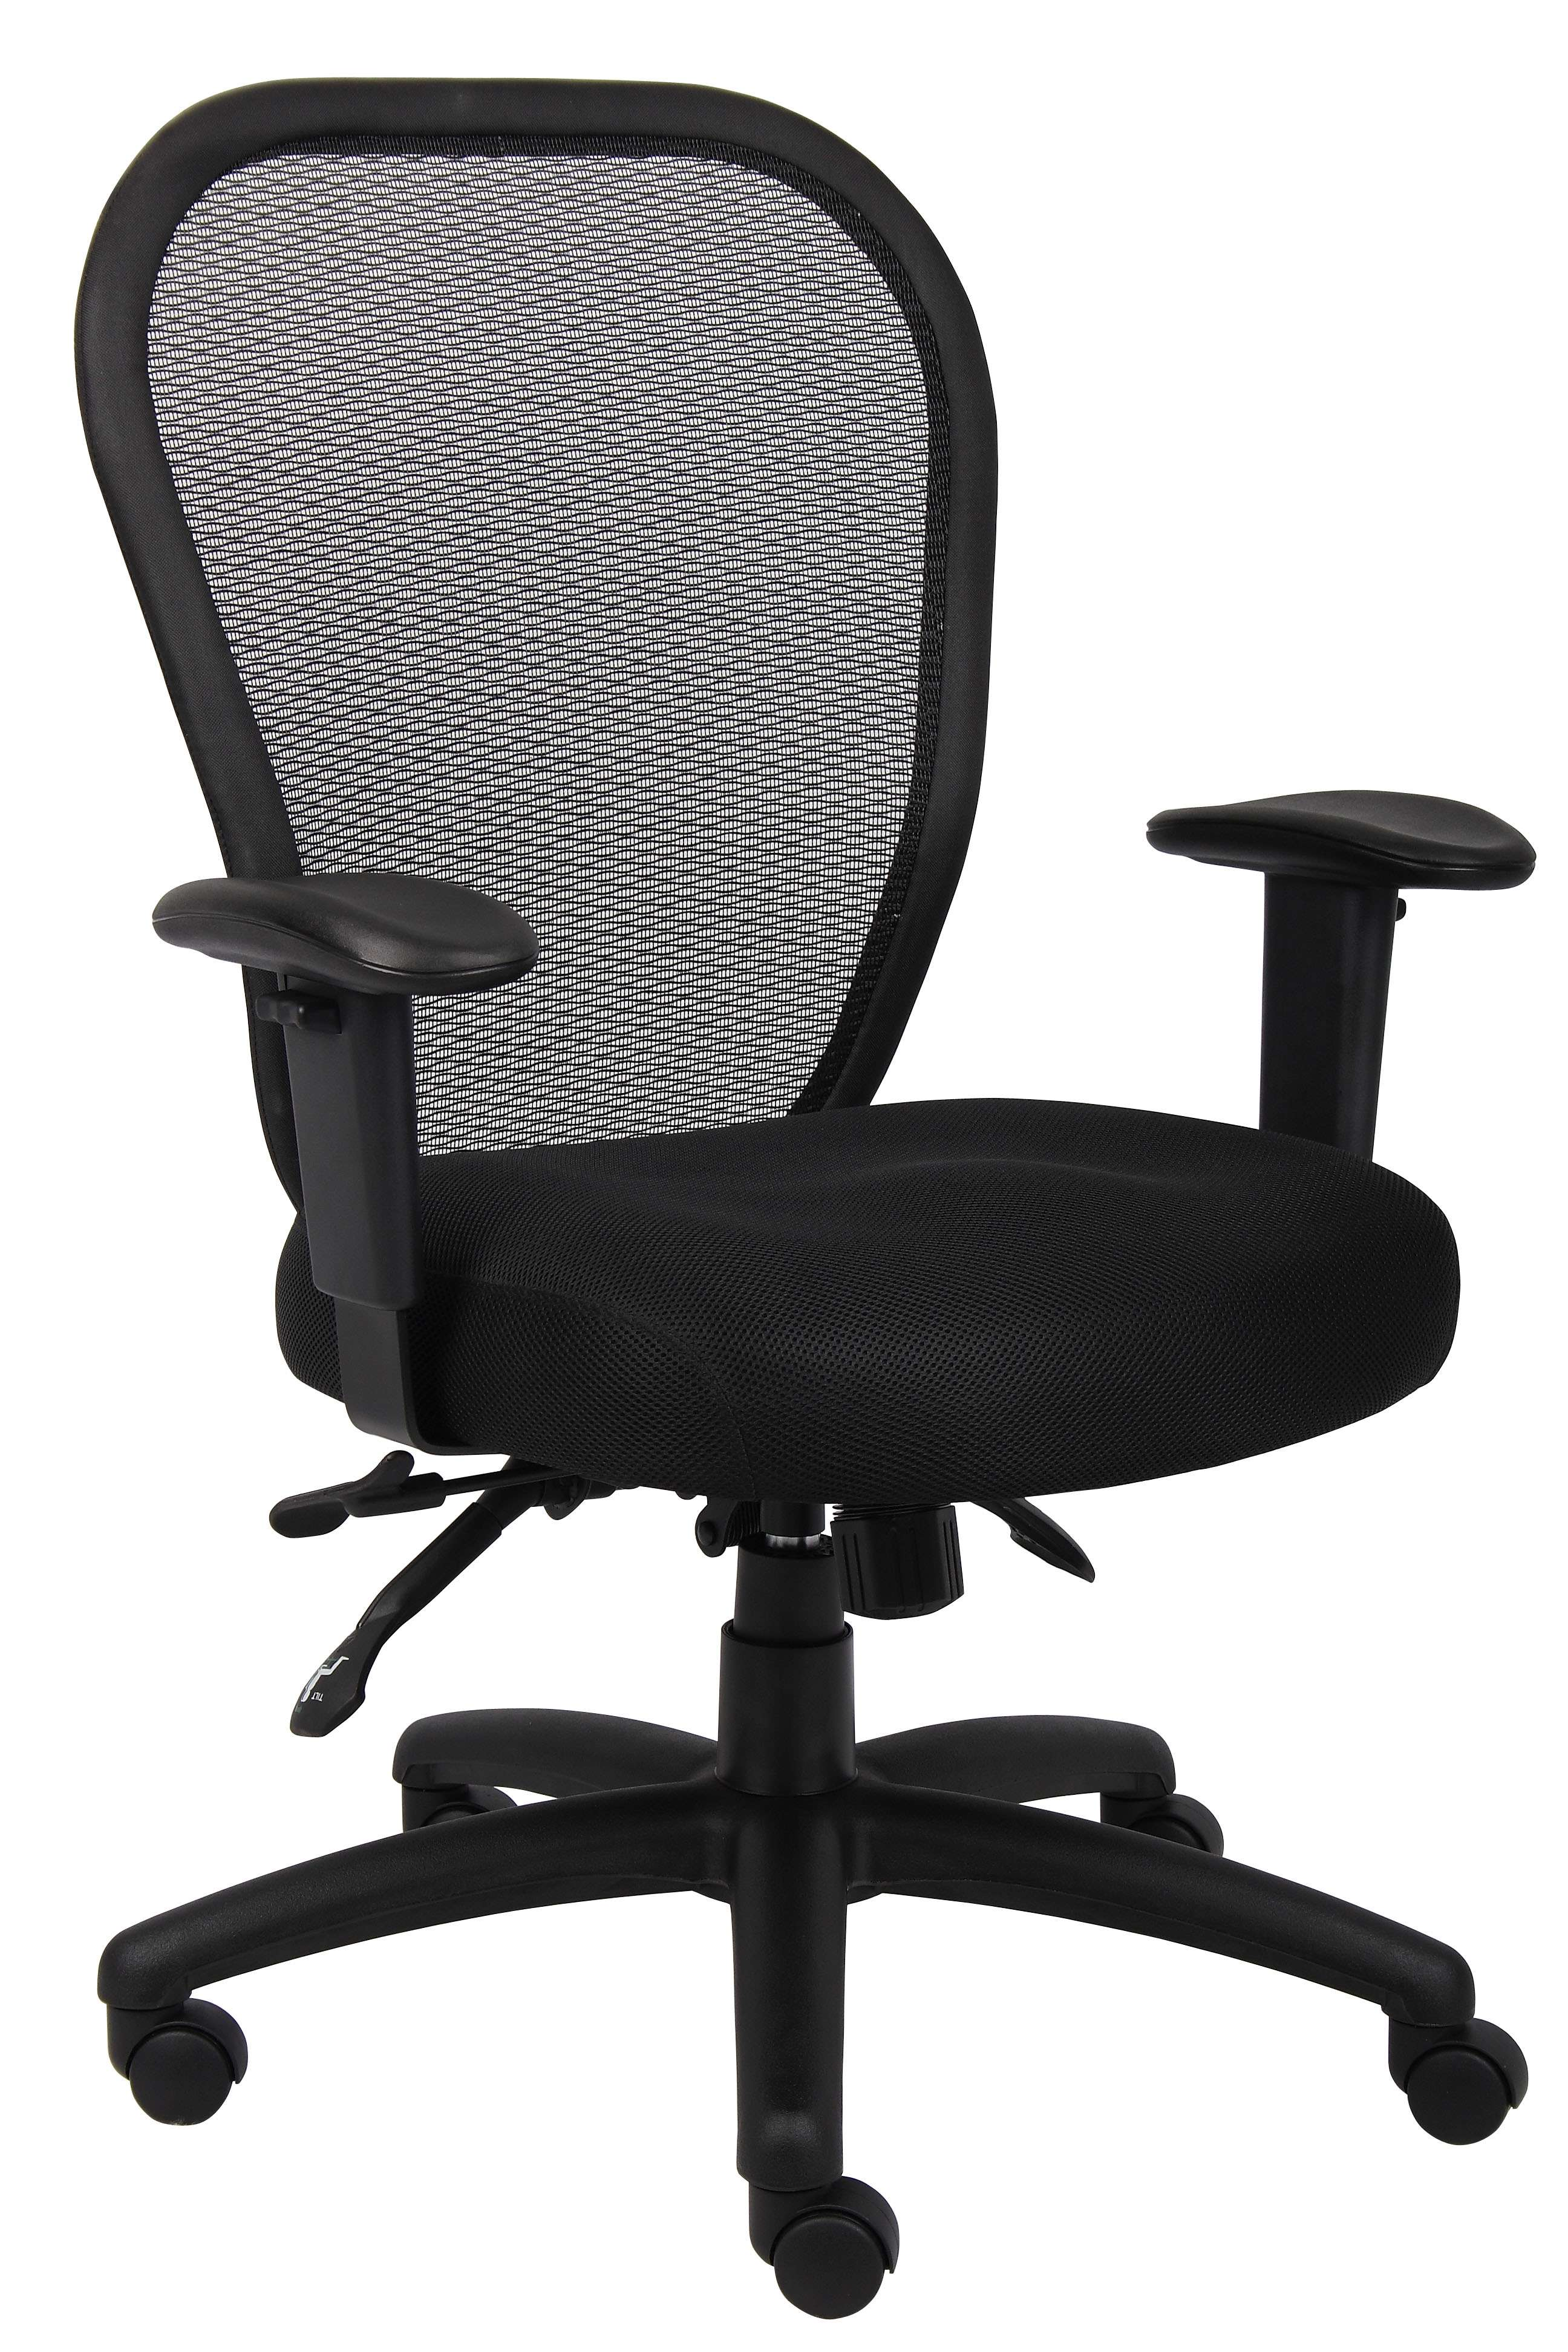 Black Mesh Chair with 3 Paddle Mechanism